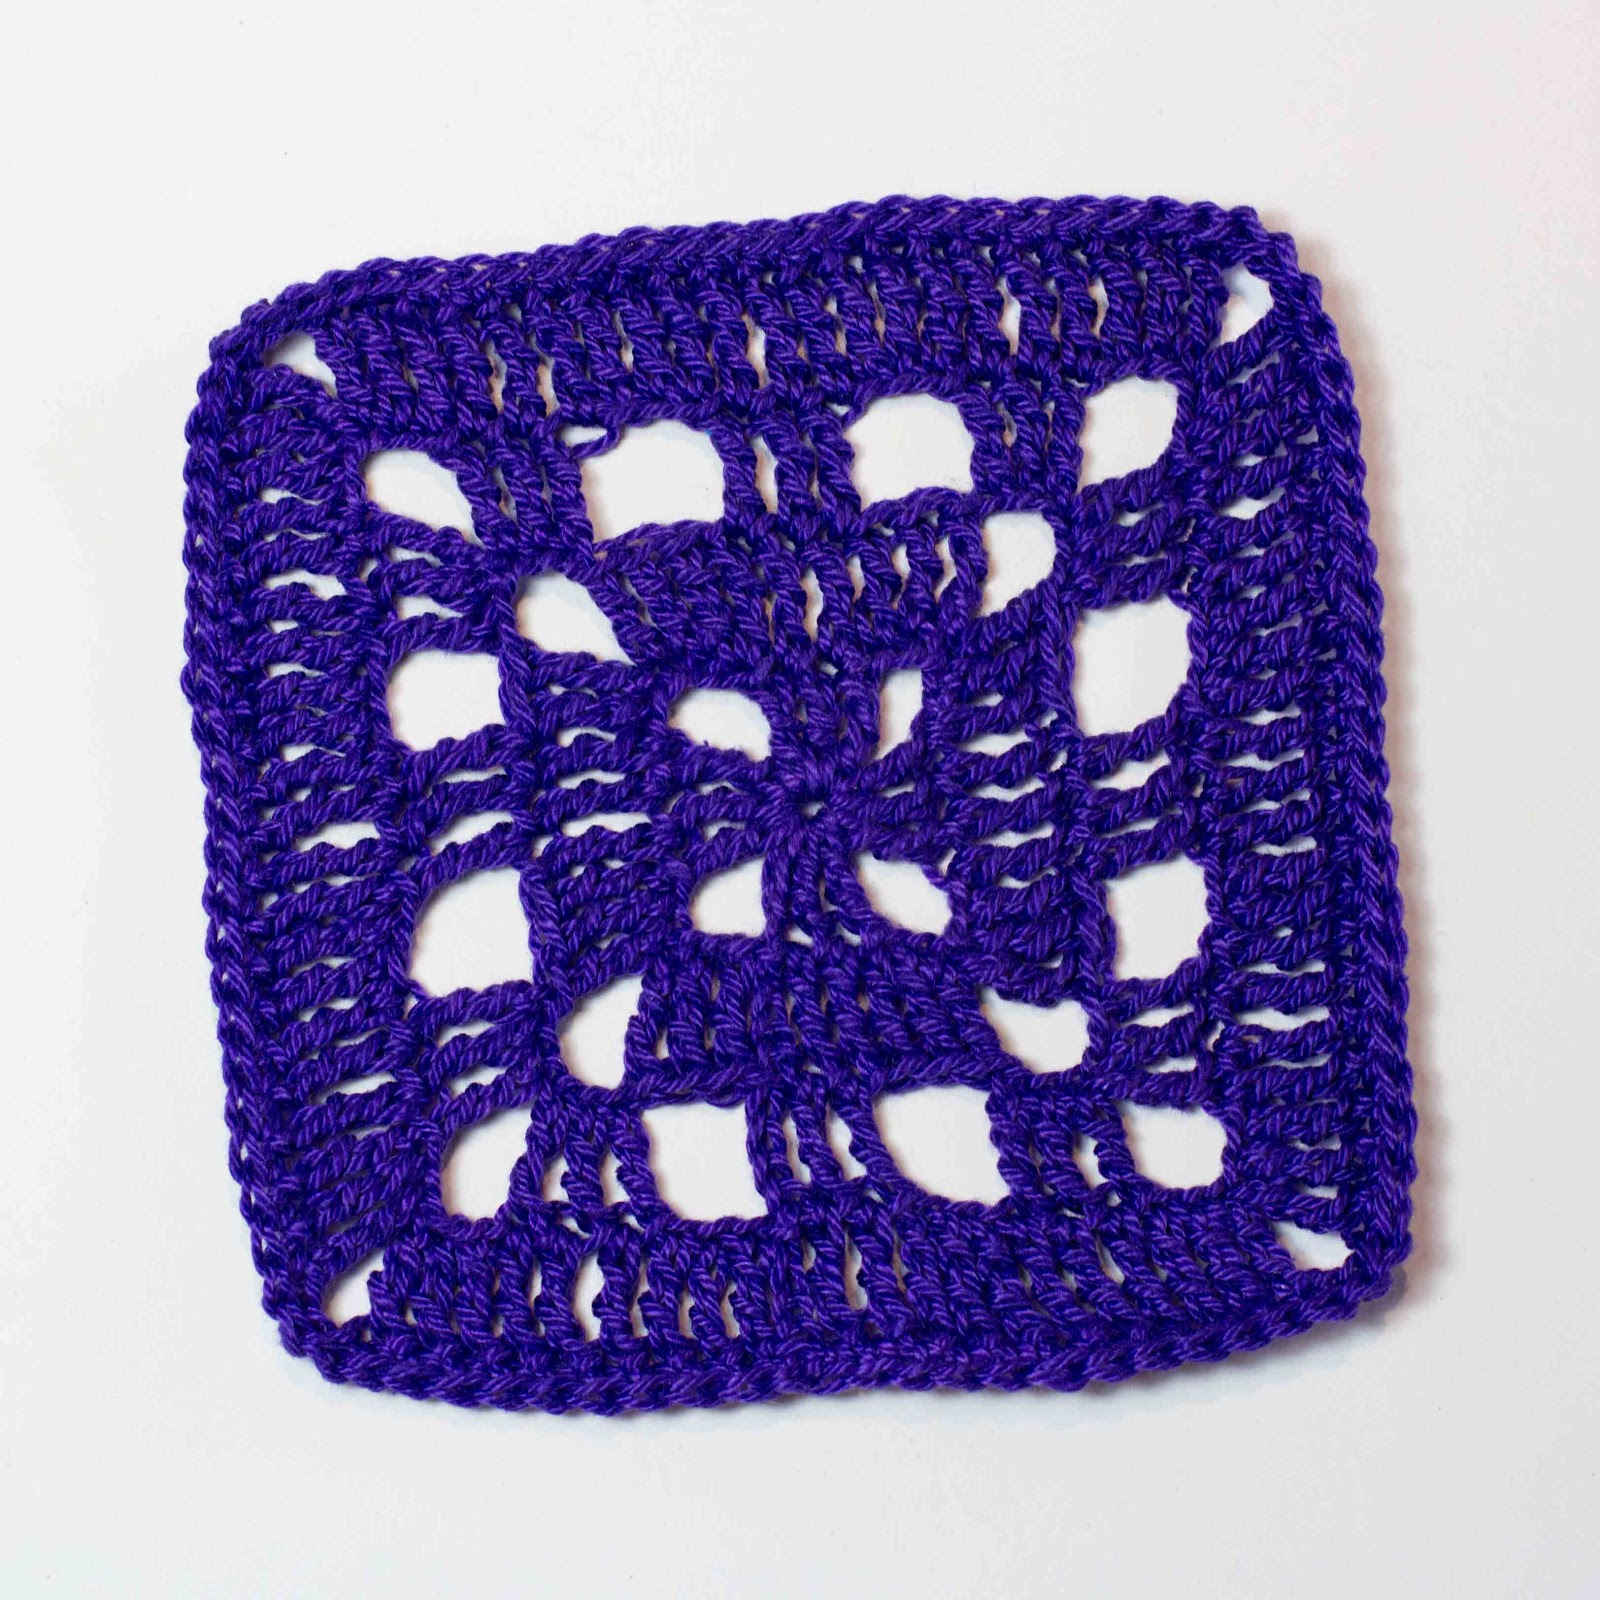 Craft crochet create all things dainty granny square pattern